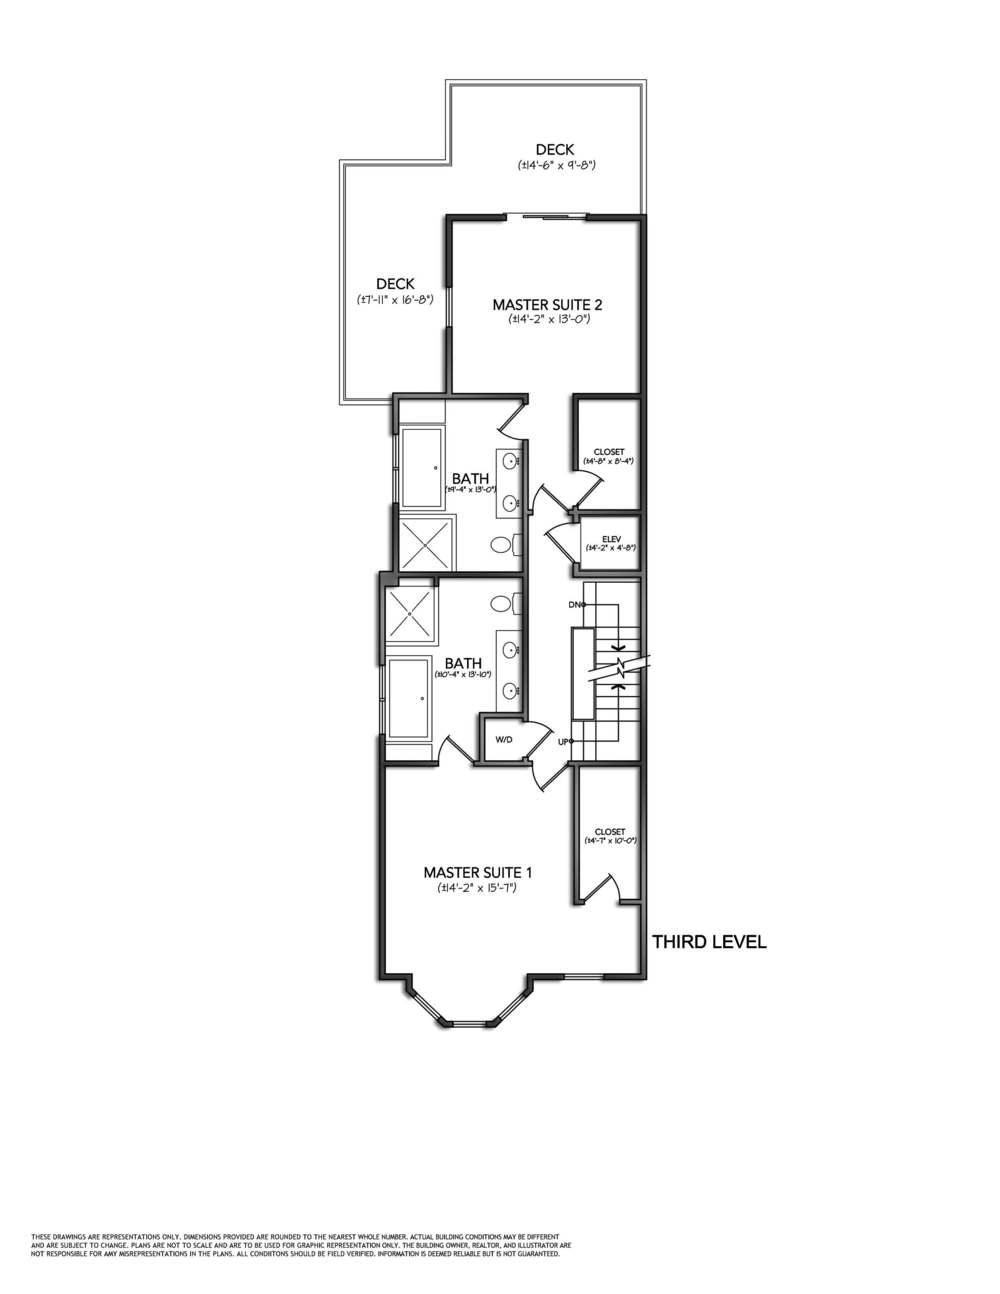 837 SVN - Floor plans - Altered for Website_Redacted_Page_3.jpg